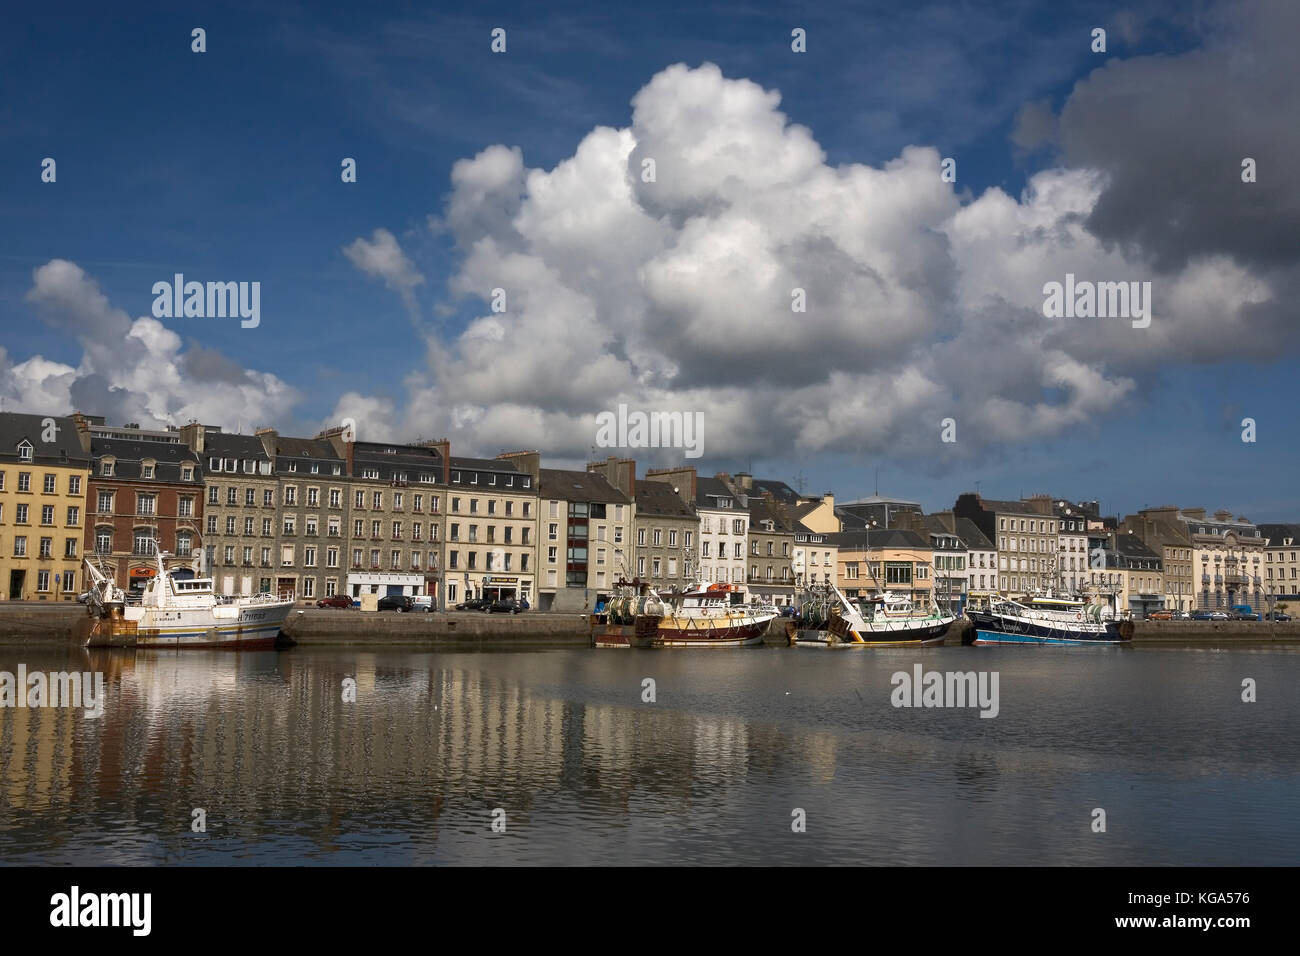 Cherbourg france port stock photos cherbourg france port stock images alamy - Chambre du commerce cherbourg ...